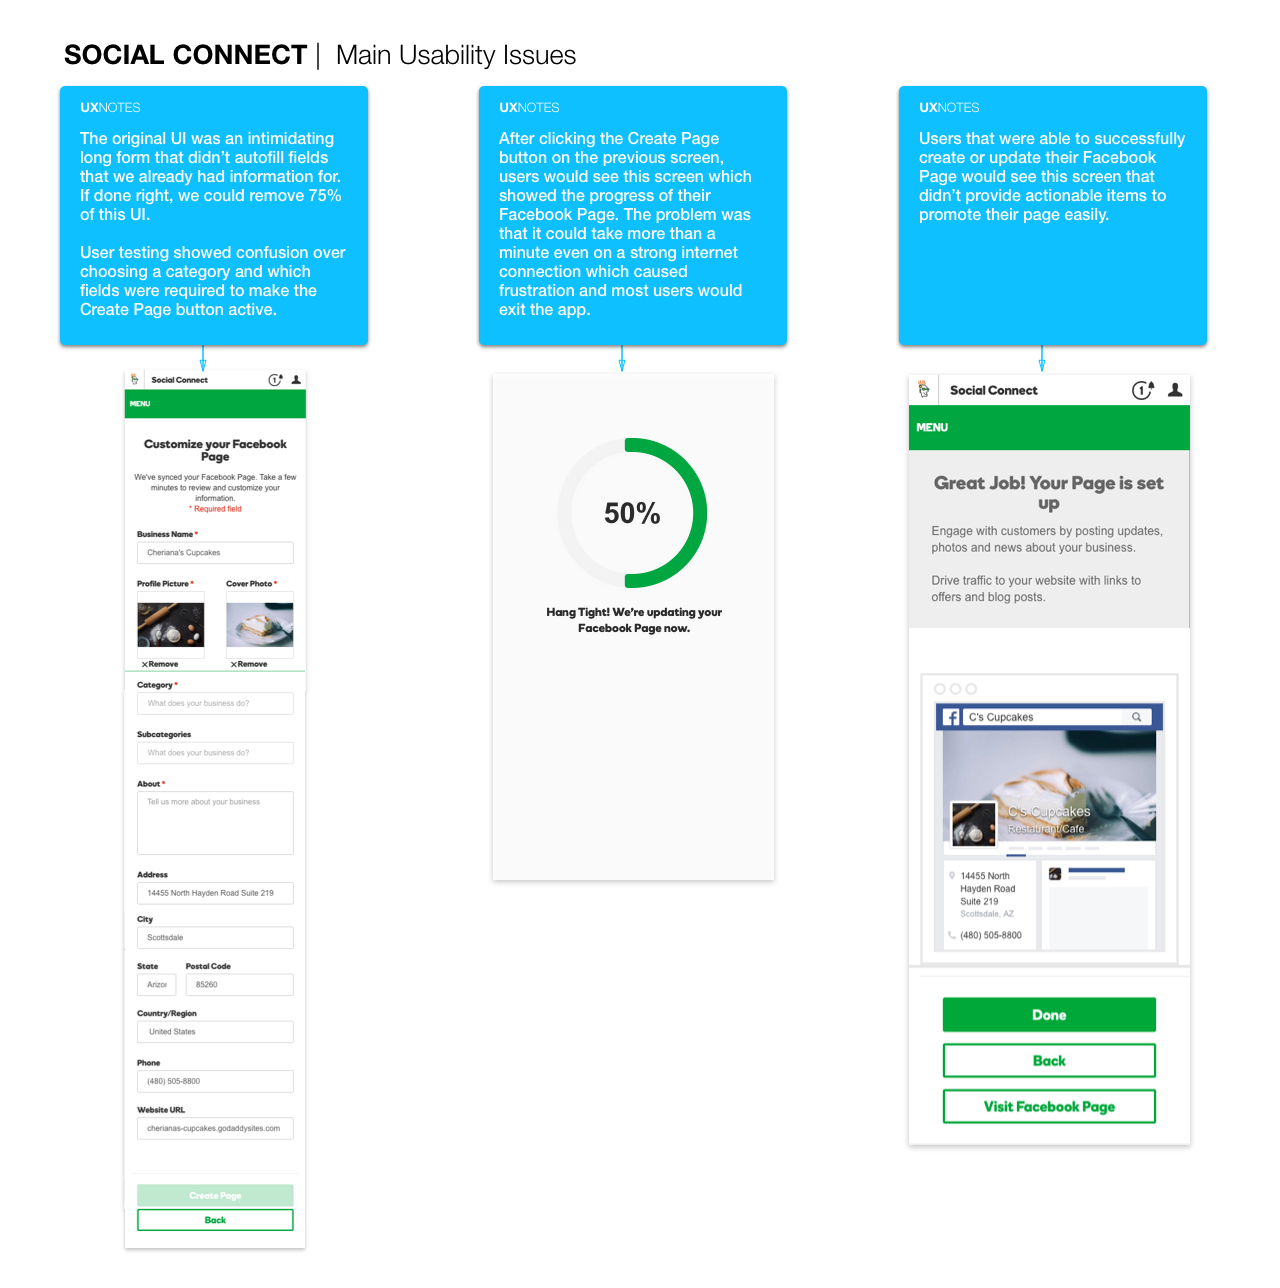 Evaluating Social Connect issues